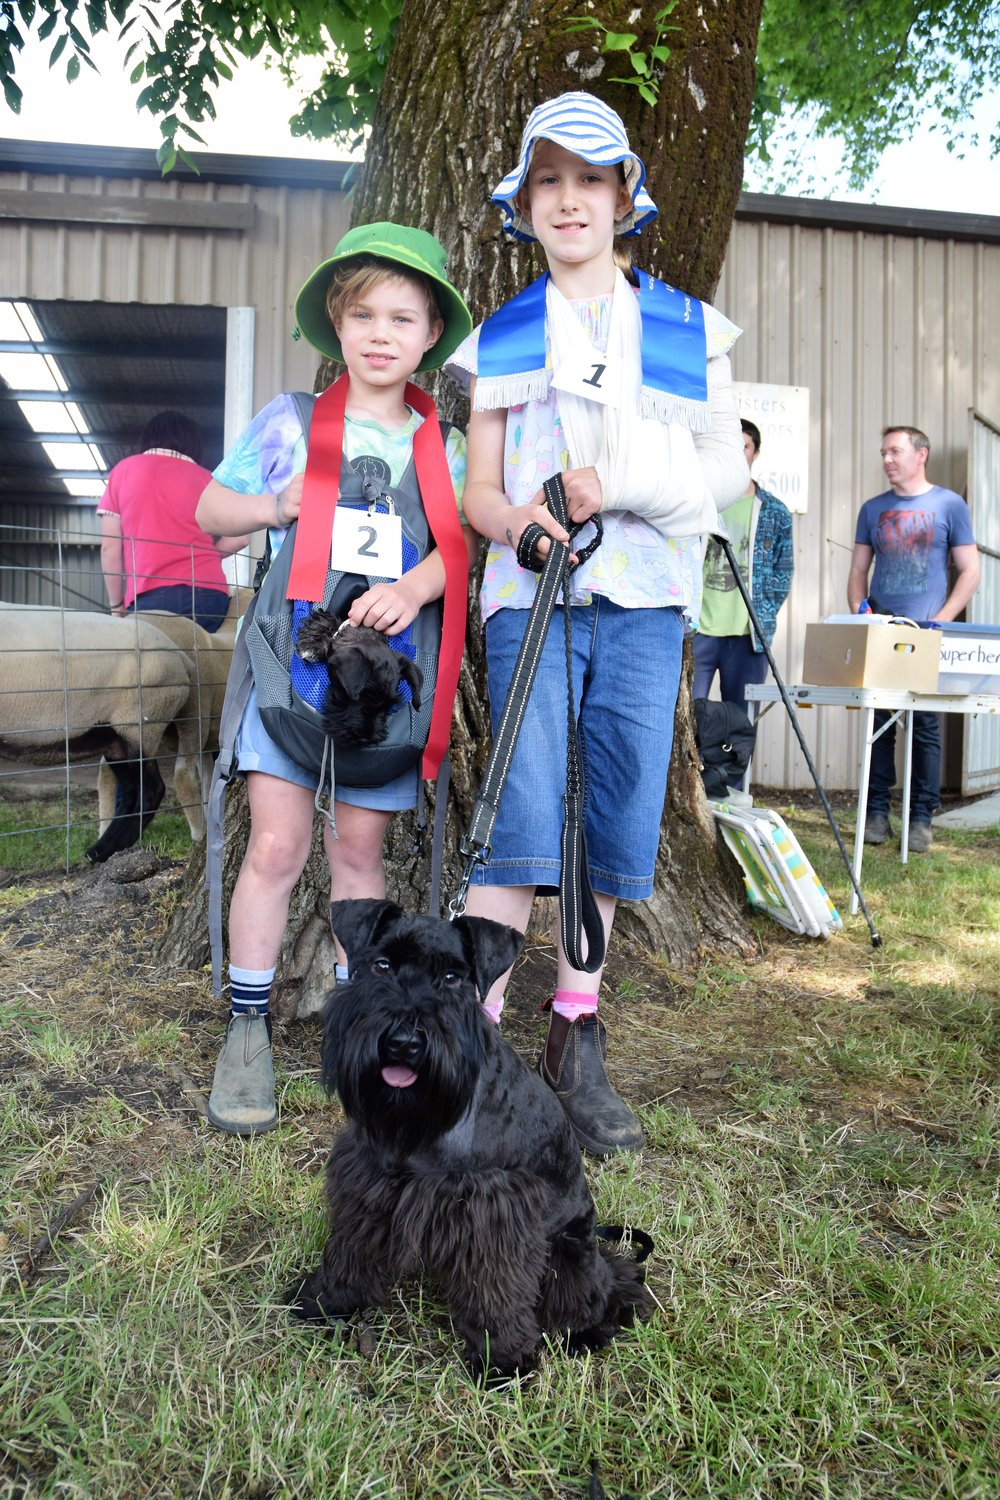 Arlo and Clementine Coone with dogs Judy and Renshaw_8 and 10_Kyneton.jpg